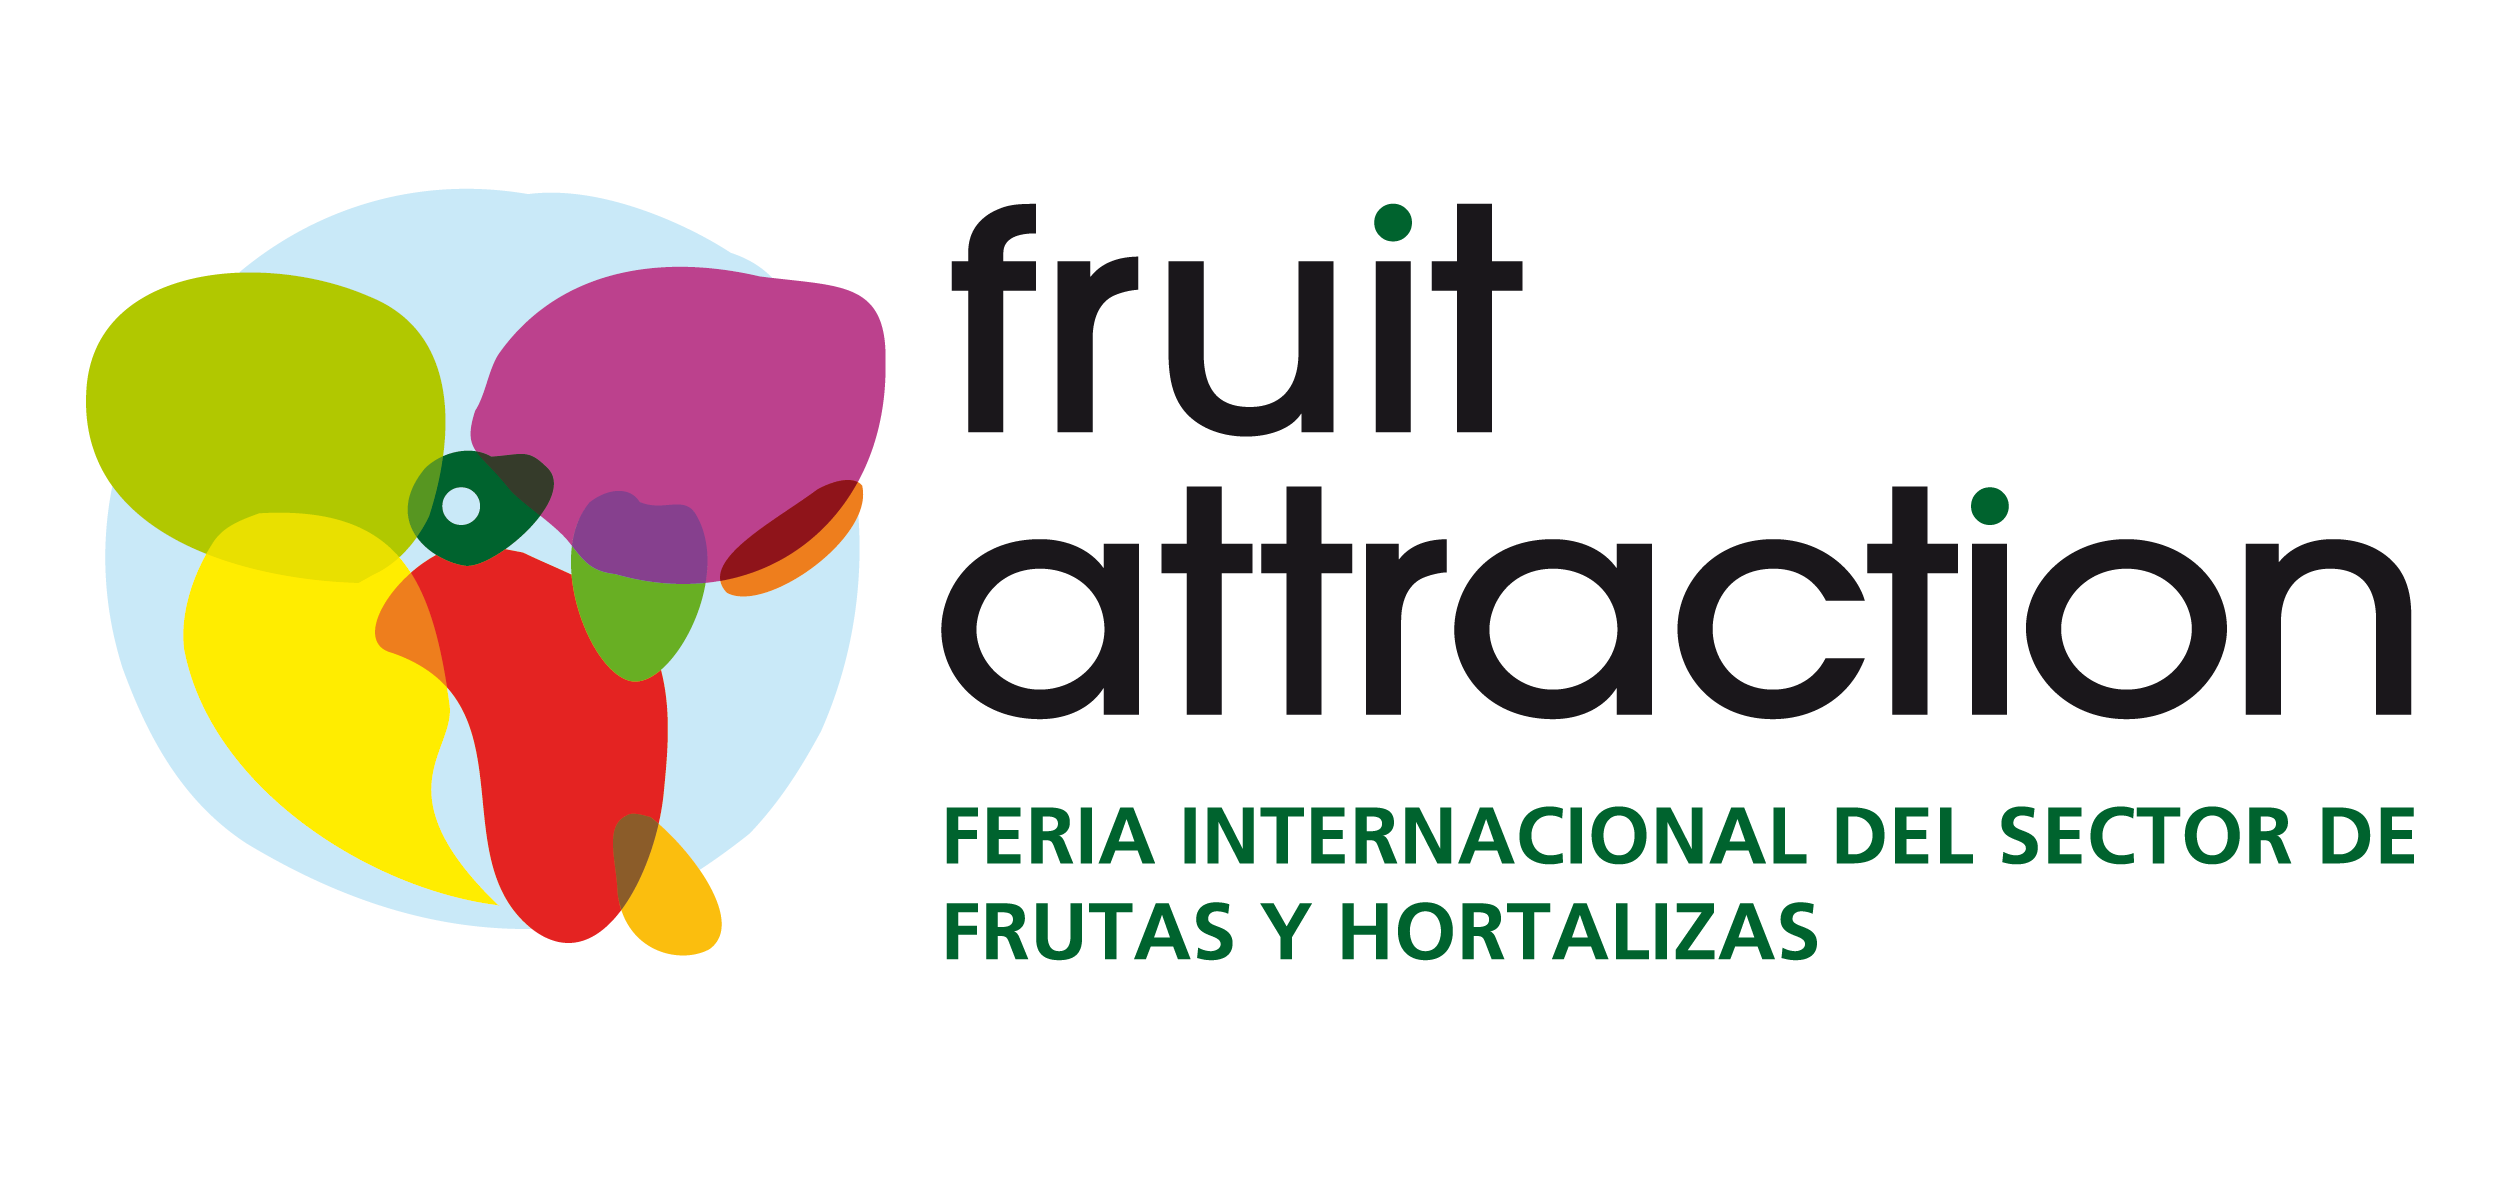 FRUIT ATRACTION